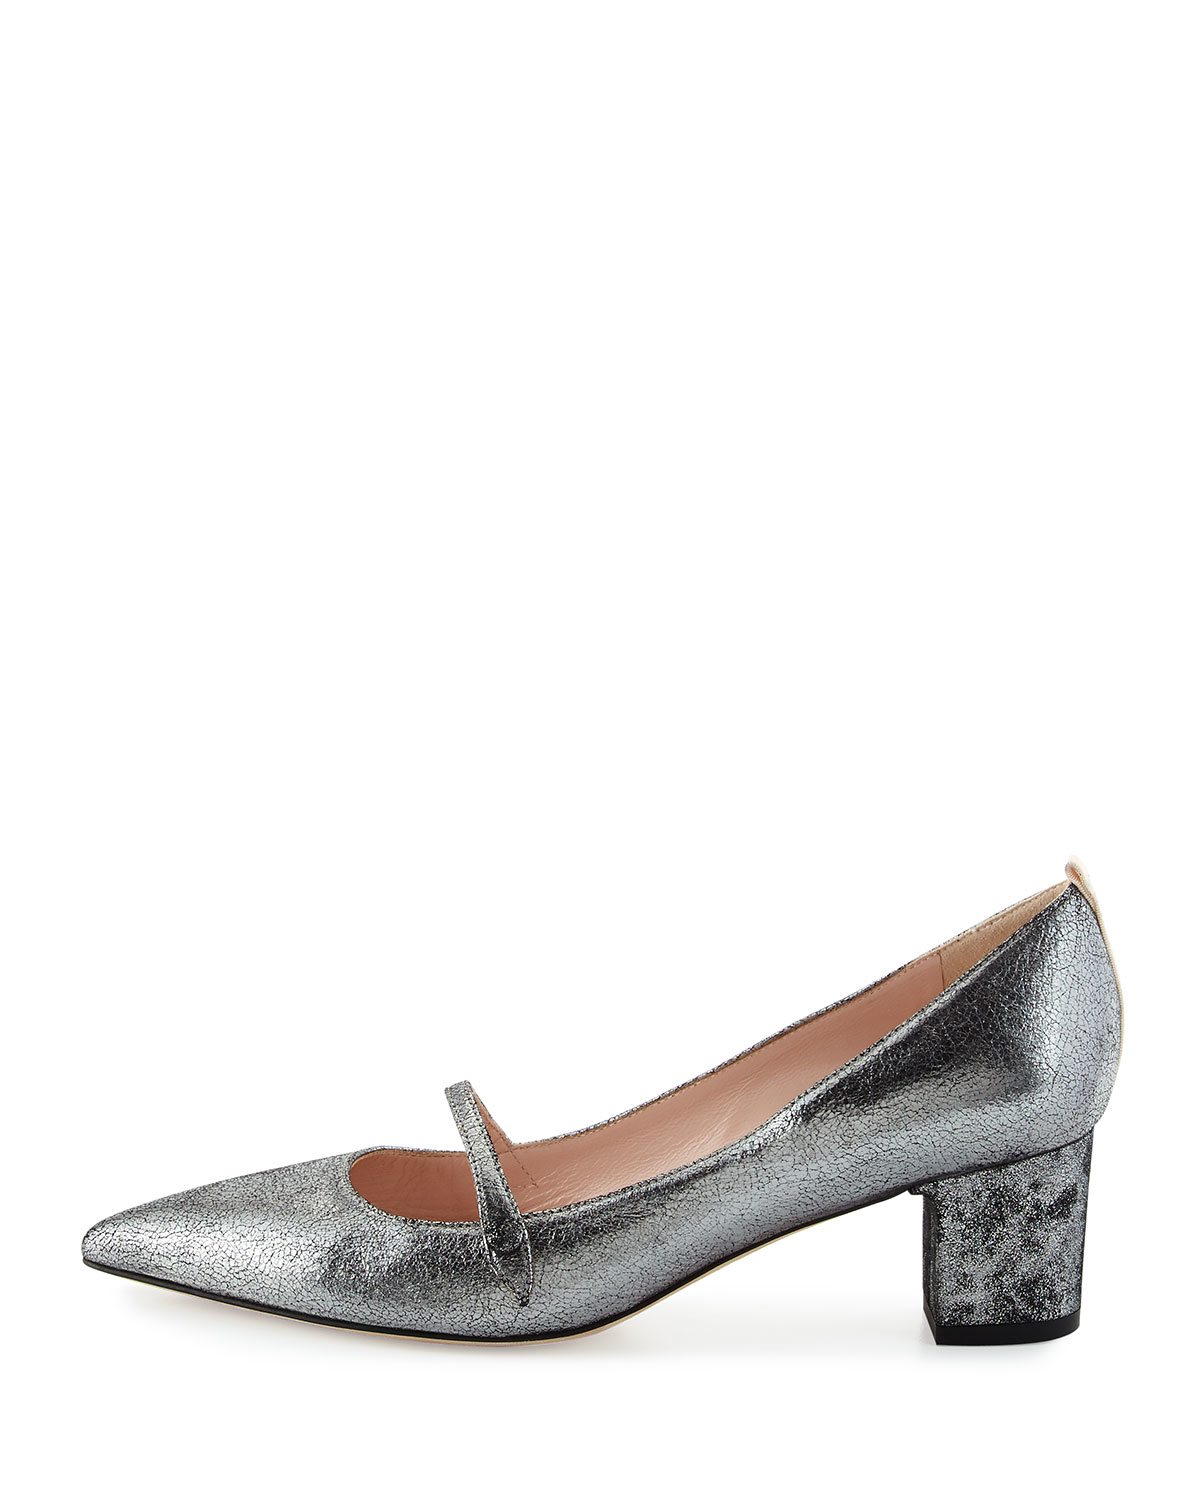 Sjp by sarah jessica parker Dame Metallic Mary Jane Pump ...